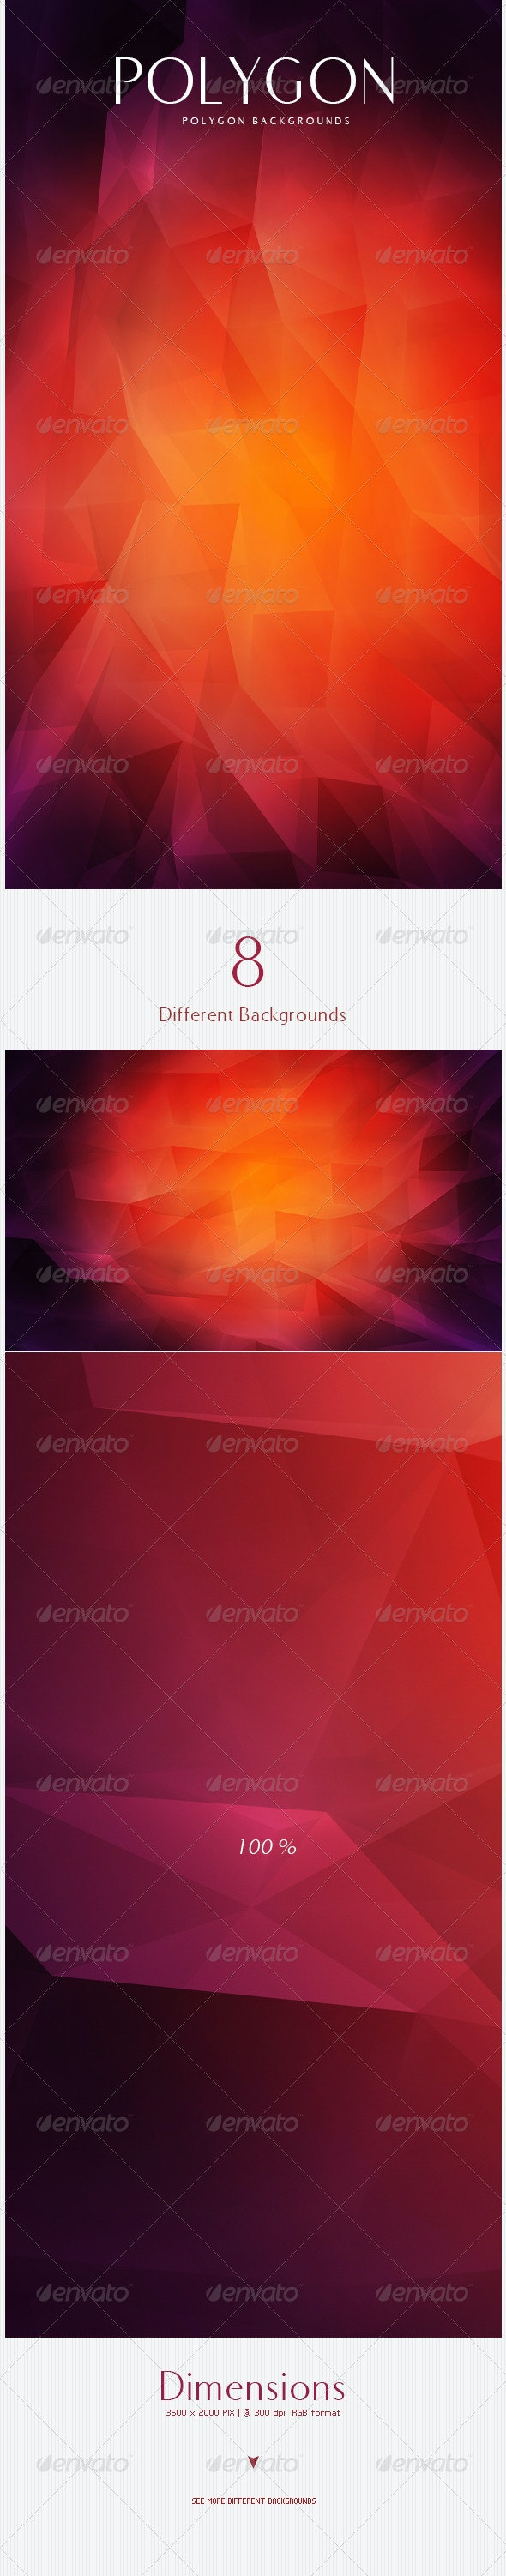 Polygon Backgrounds - 3D Backgrounds